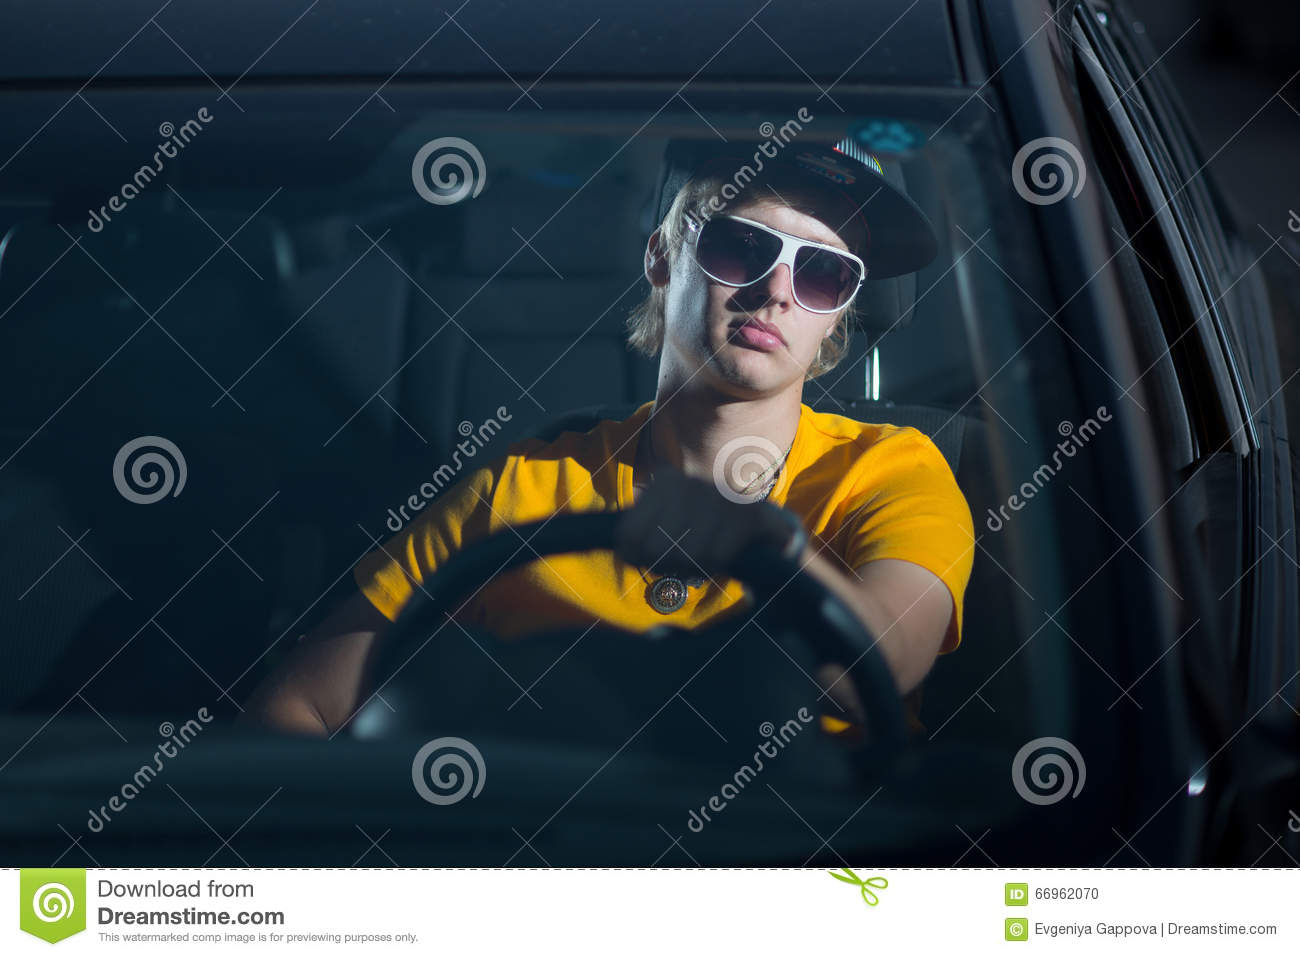 423940350a5f5 Cool Dude Stock Images - Download 6